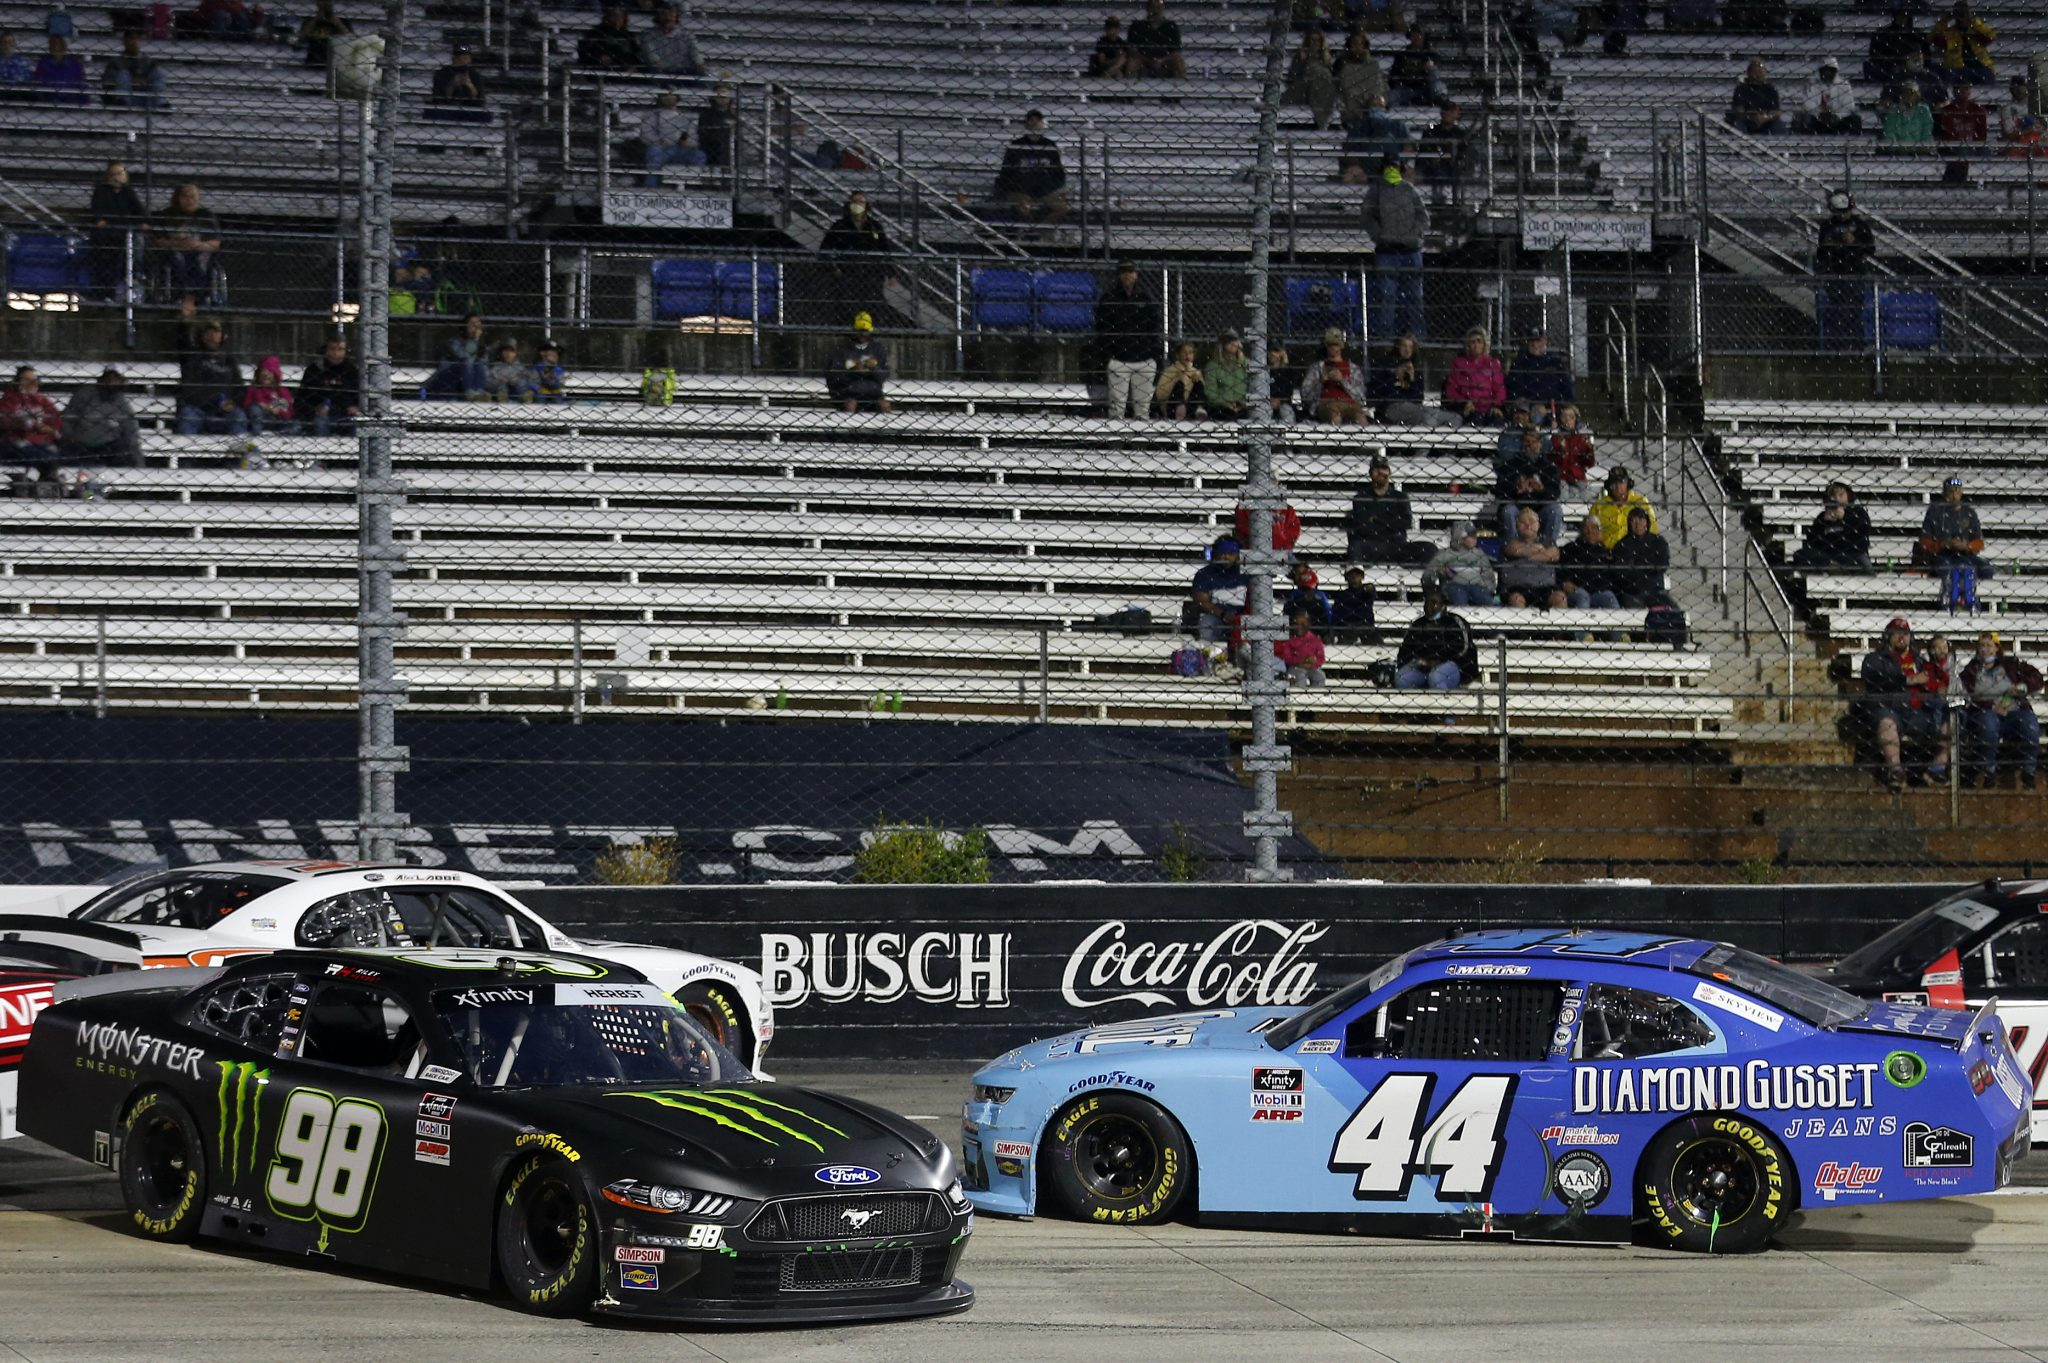 MARTINSVILLE, VIRGINIA - APRIL 09: Riley Herbst, driver of the #98 Monster Energy Ford, and Tommy Joe Martins, driver of the #44 Diamond Gusset Jeans Chevrolet, spin after an on-track incident during the NASCAR Xfinity Series Cook Out 250 at Martinsville Speedway on April 09, 2021 in Martinsville, Virginia. (Photo by Brian Lawdermilk/Getty Images) | Getty Images